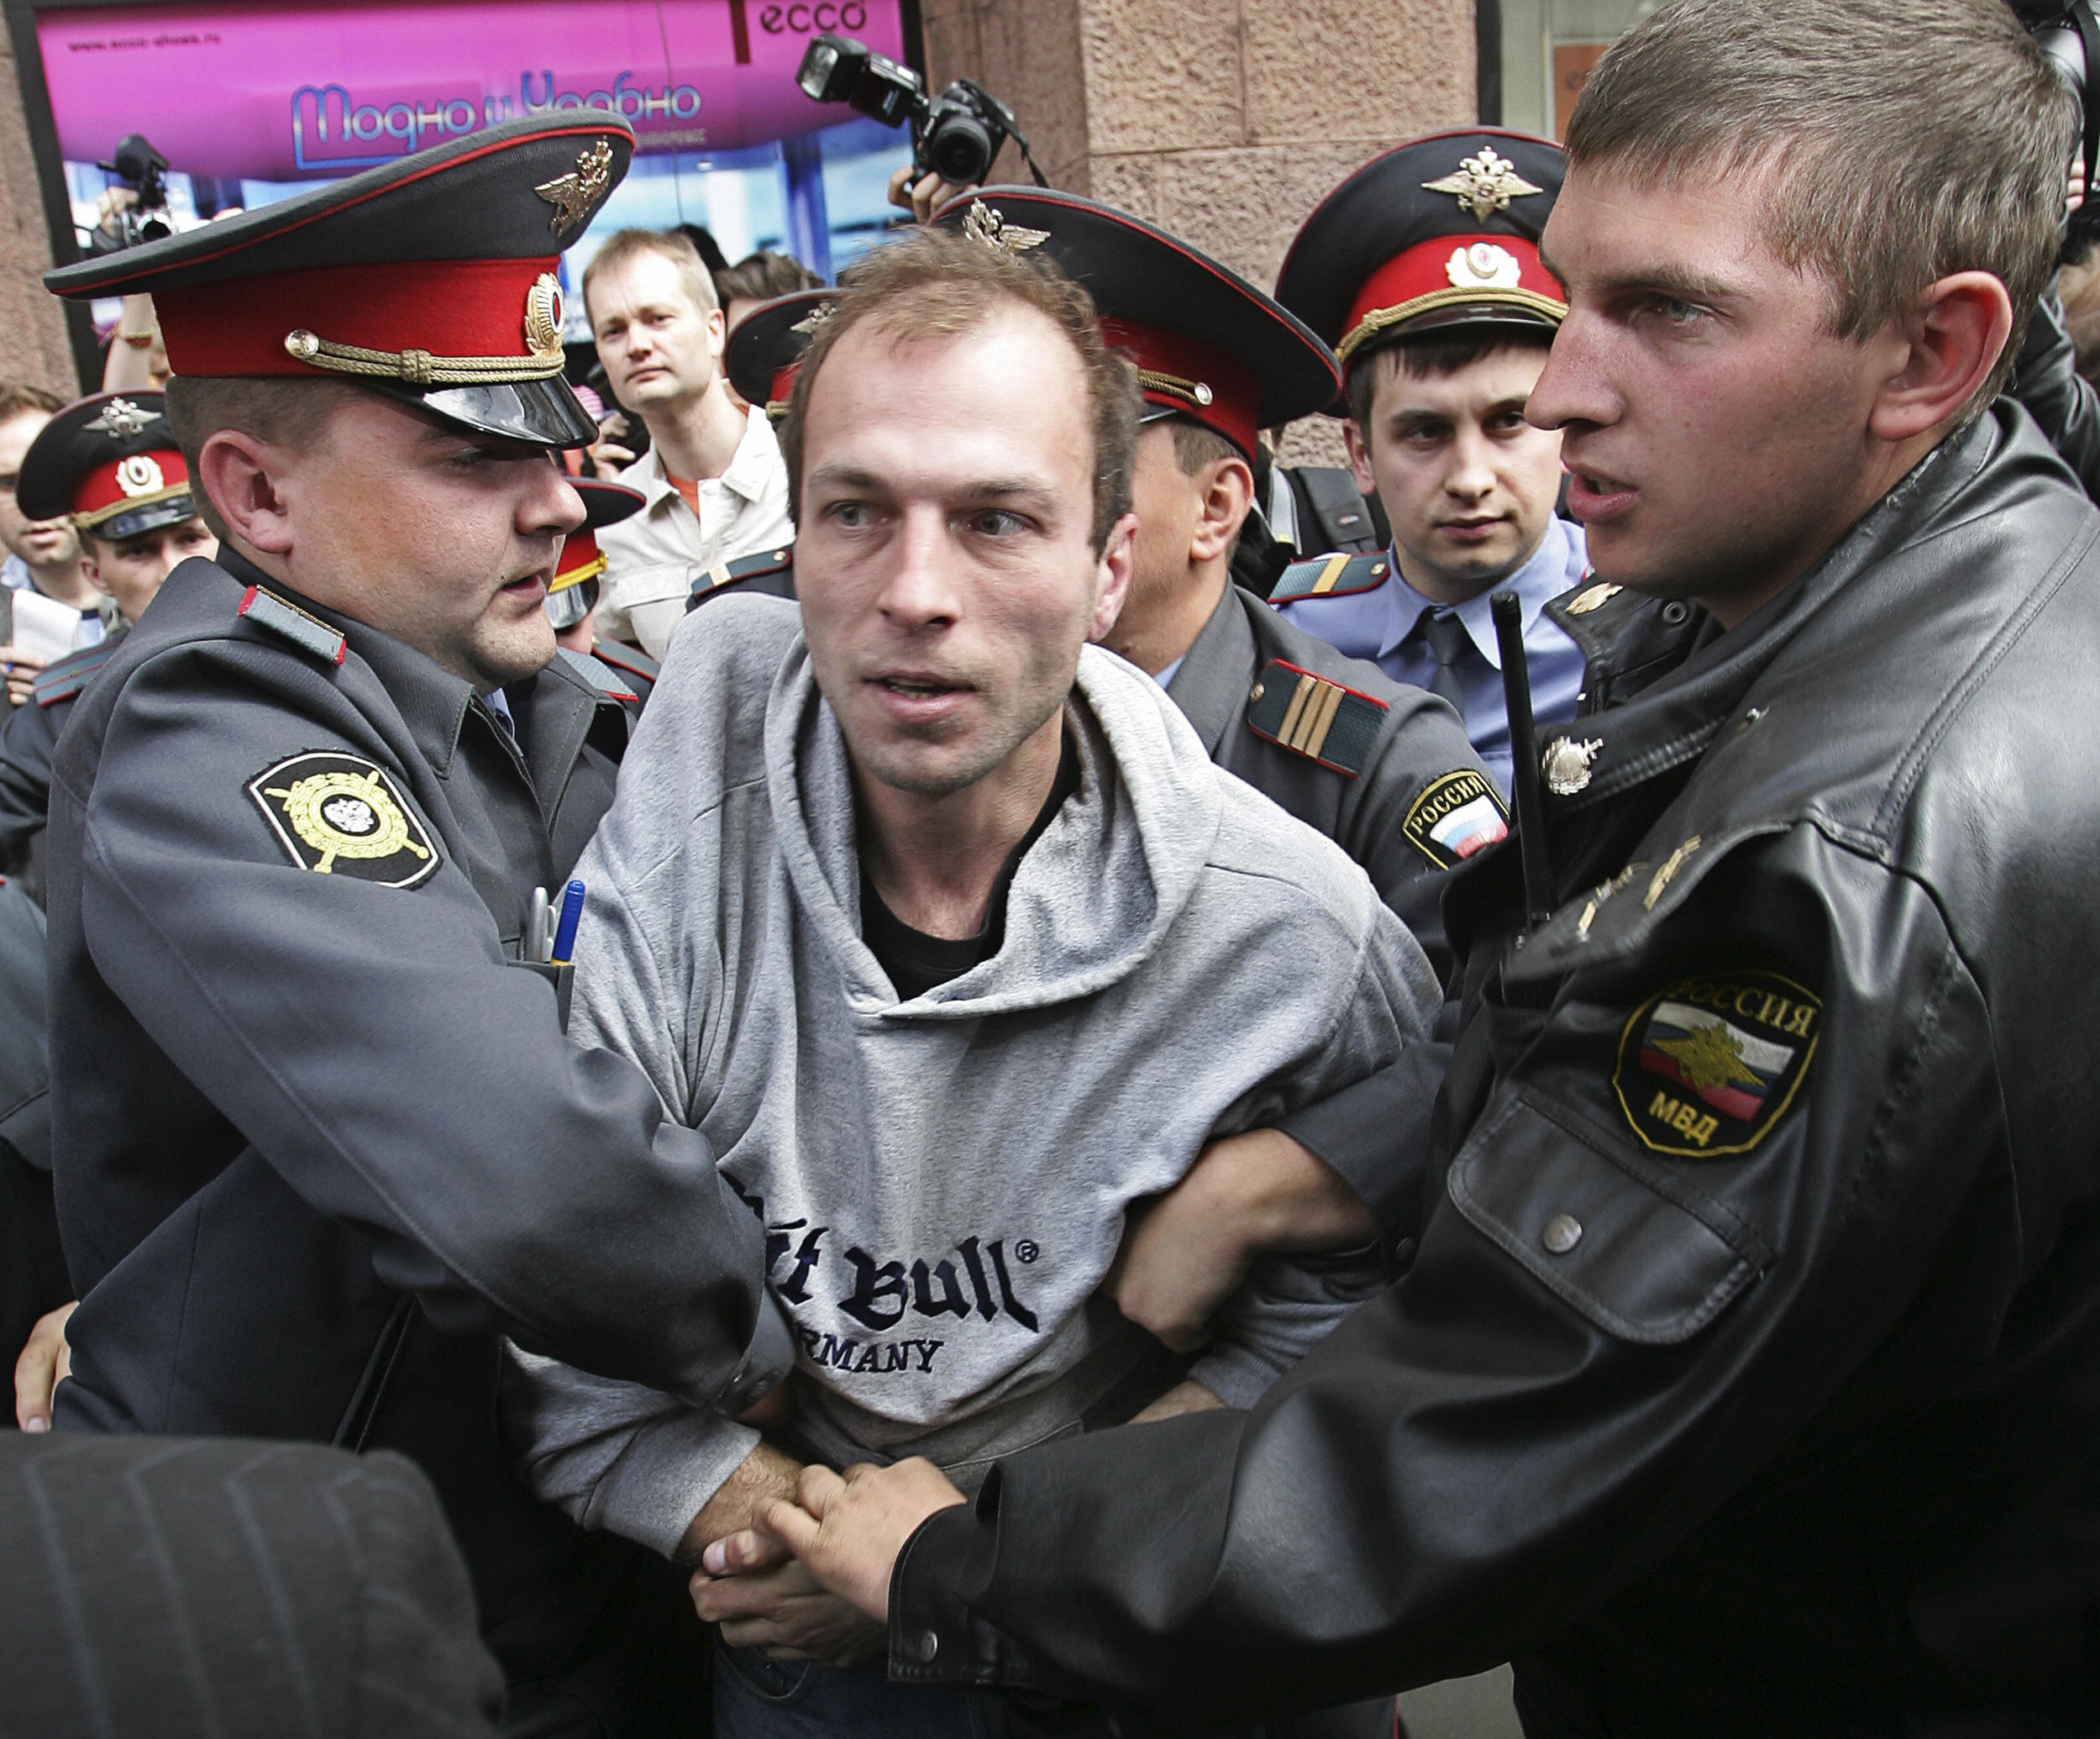 Russian police forces arrest a far-right activist during a banned gay rally.